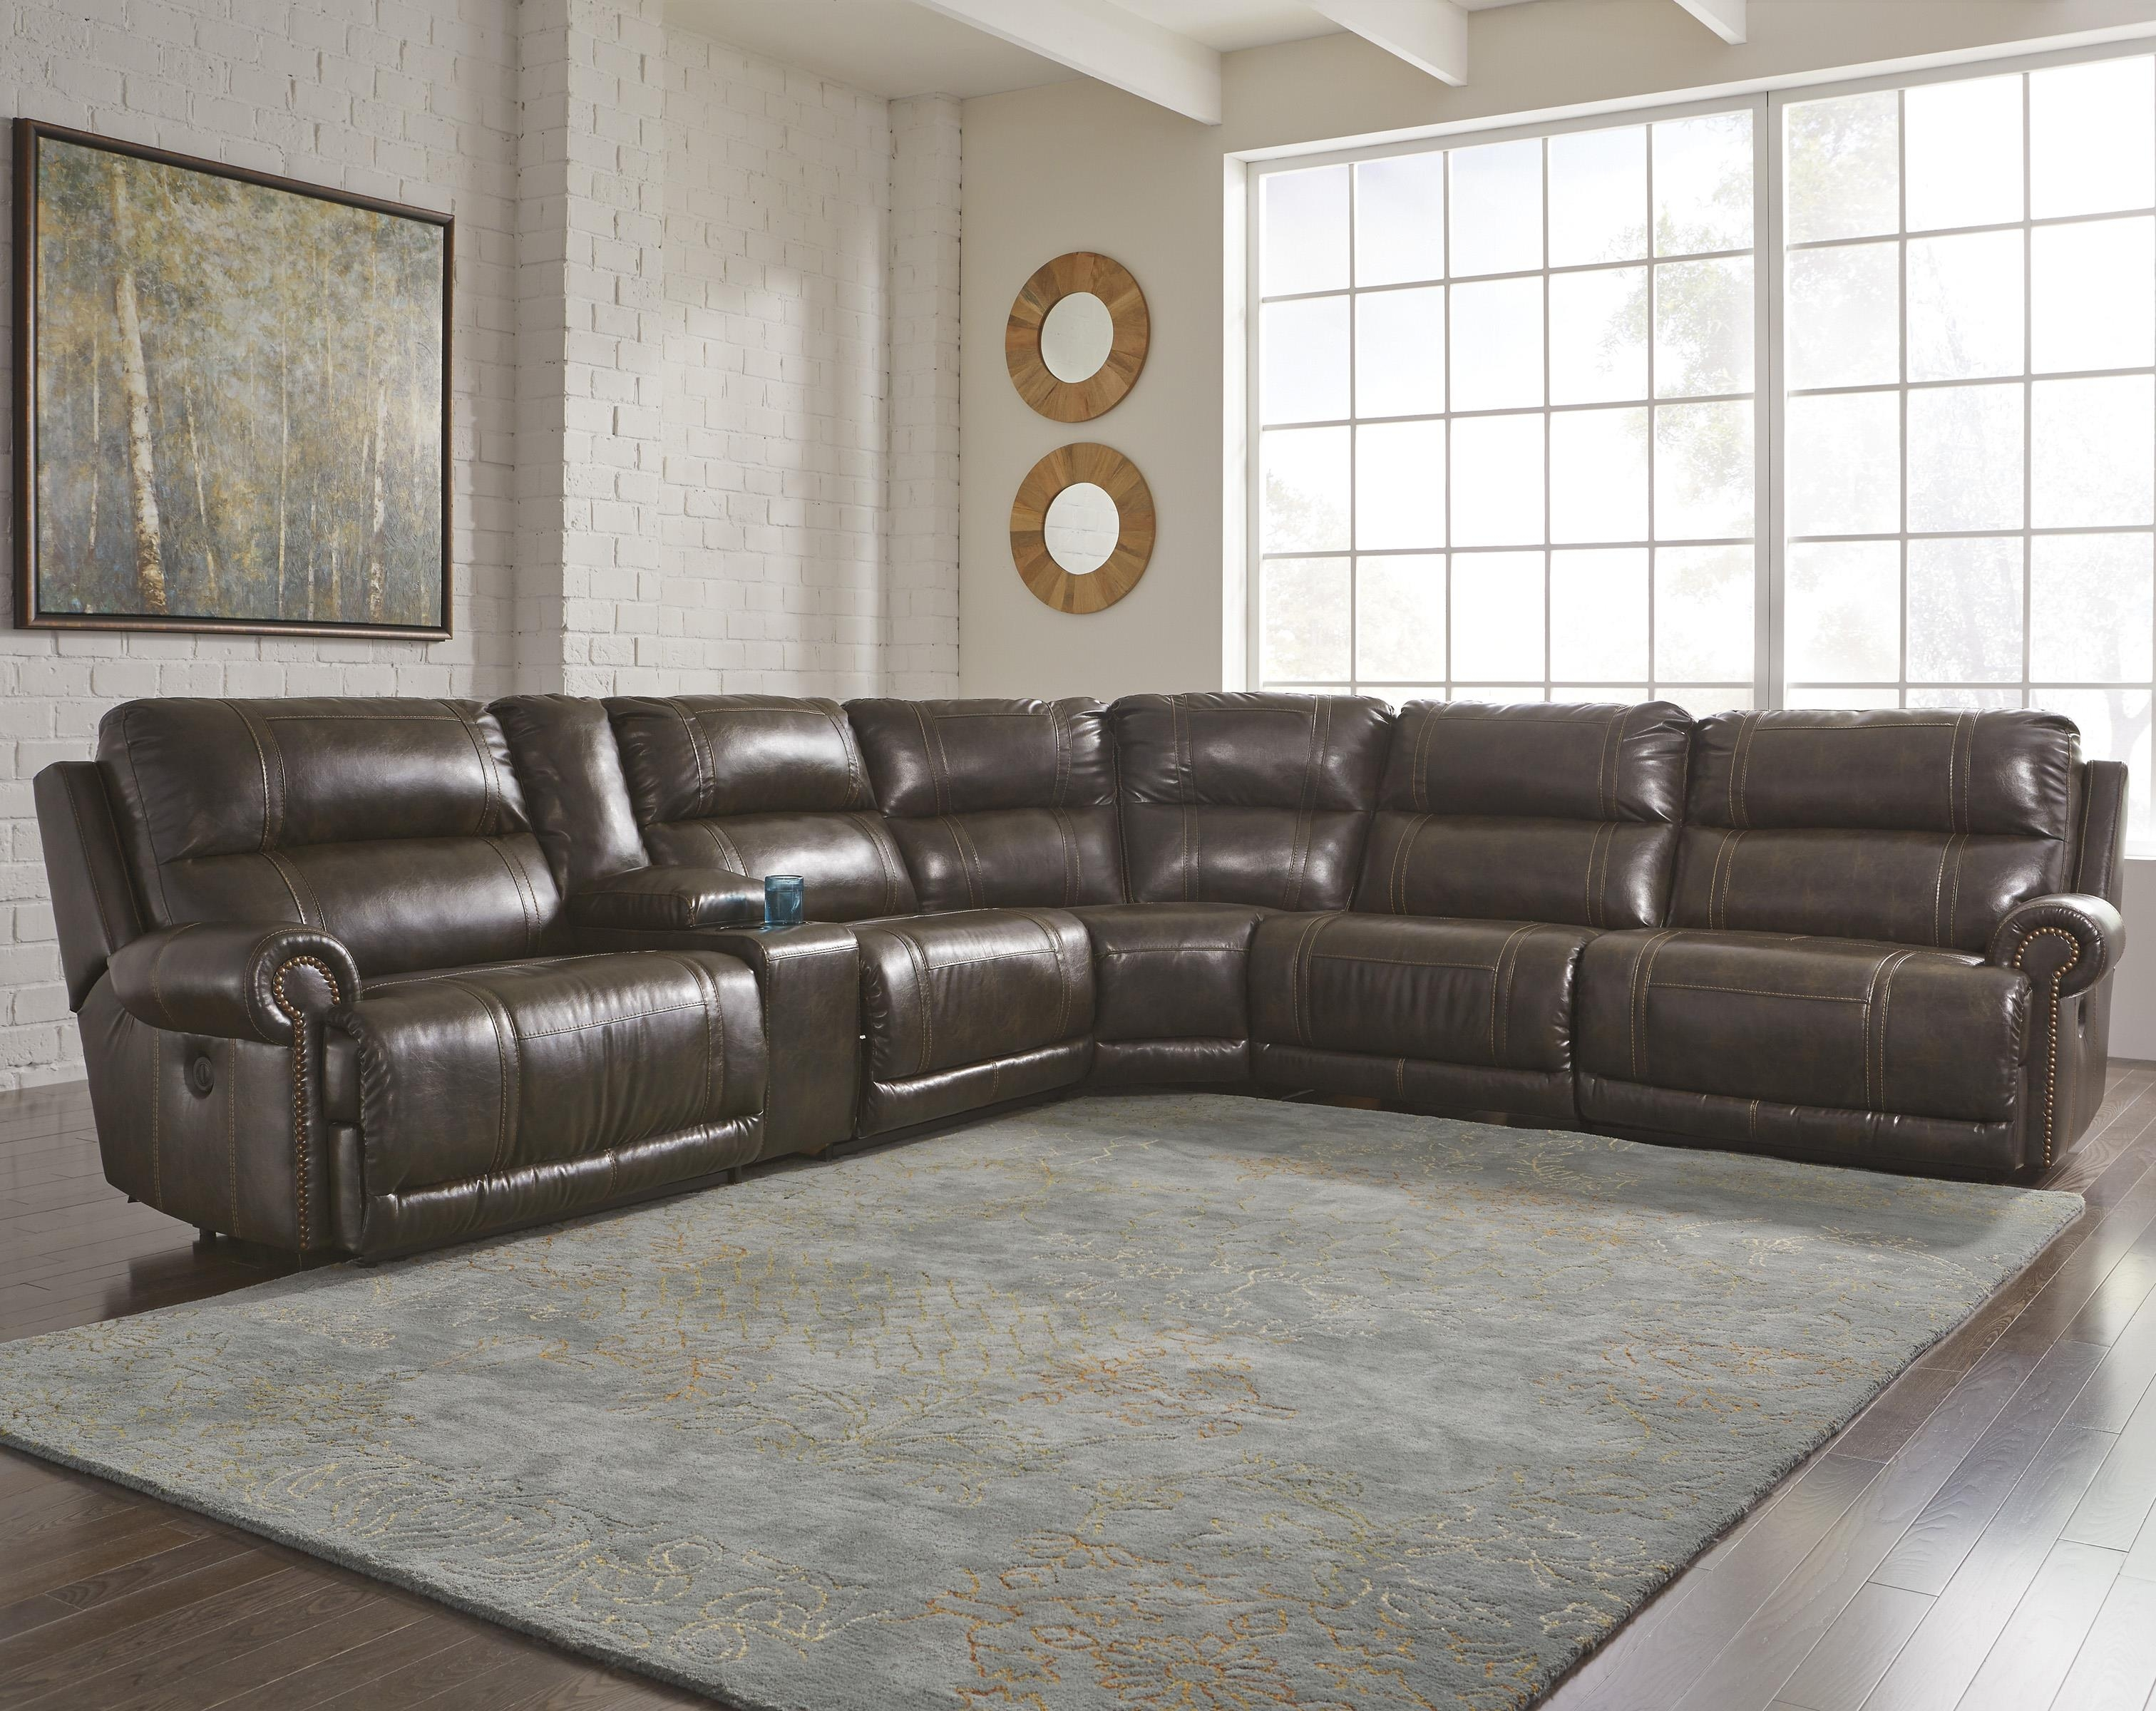 6 piece modular sectional sofa cream leather and wood 12 best collection of